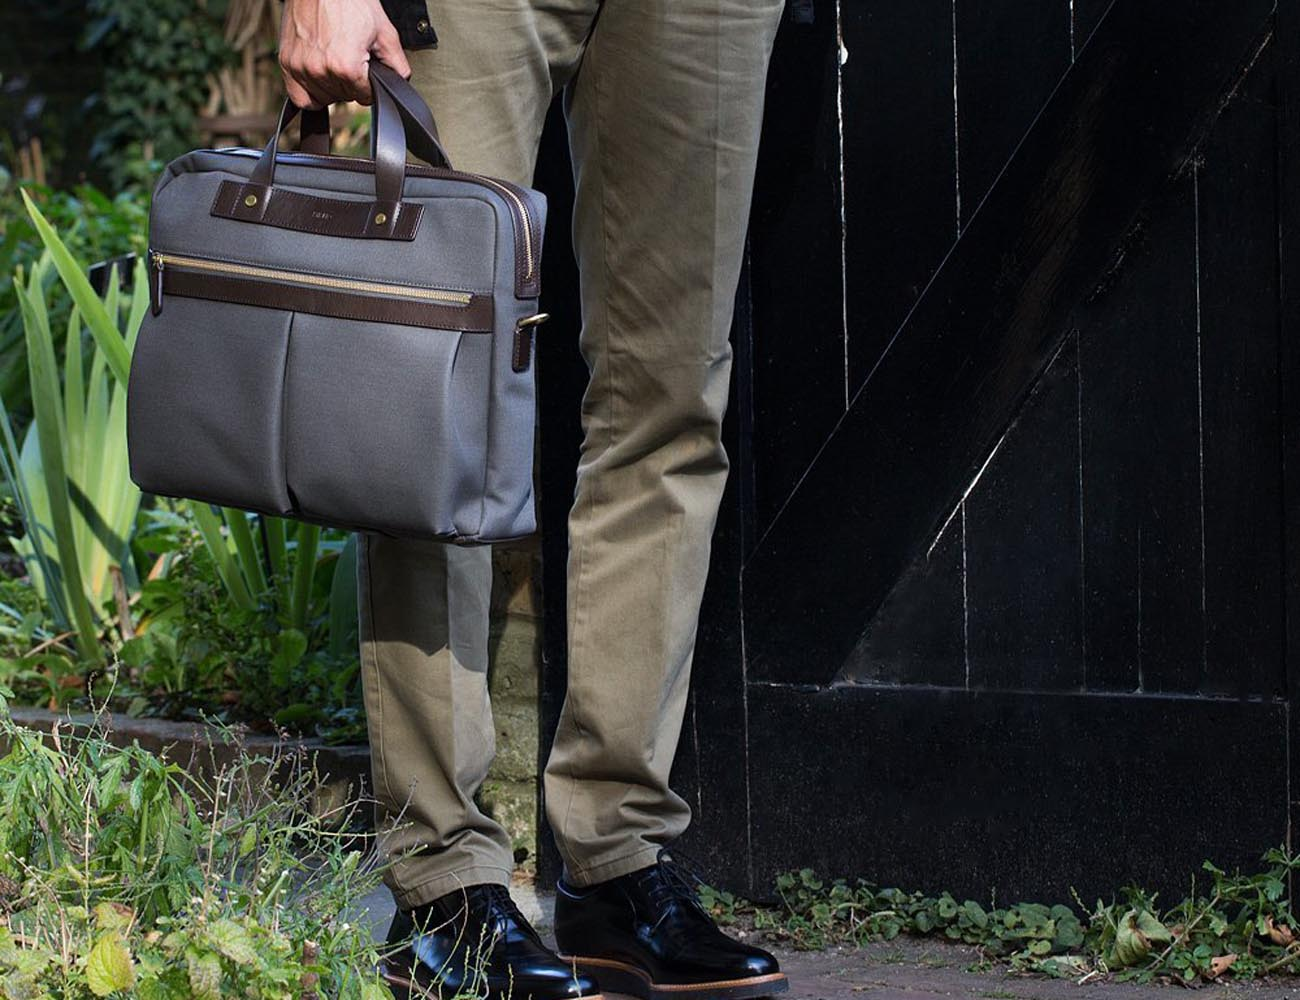 Charcoal Black MS Office Briefcase by Mismo